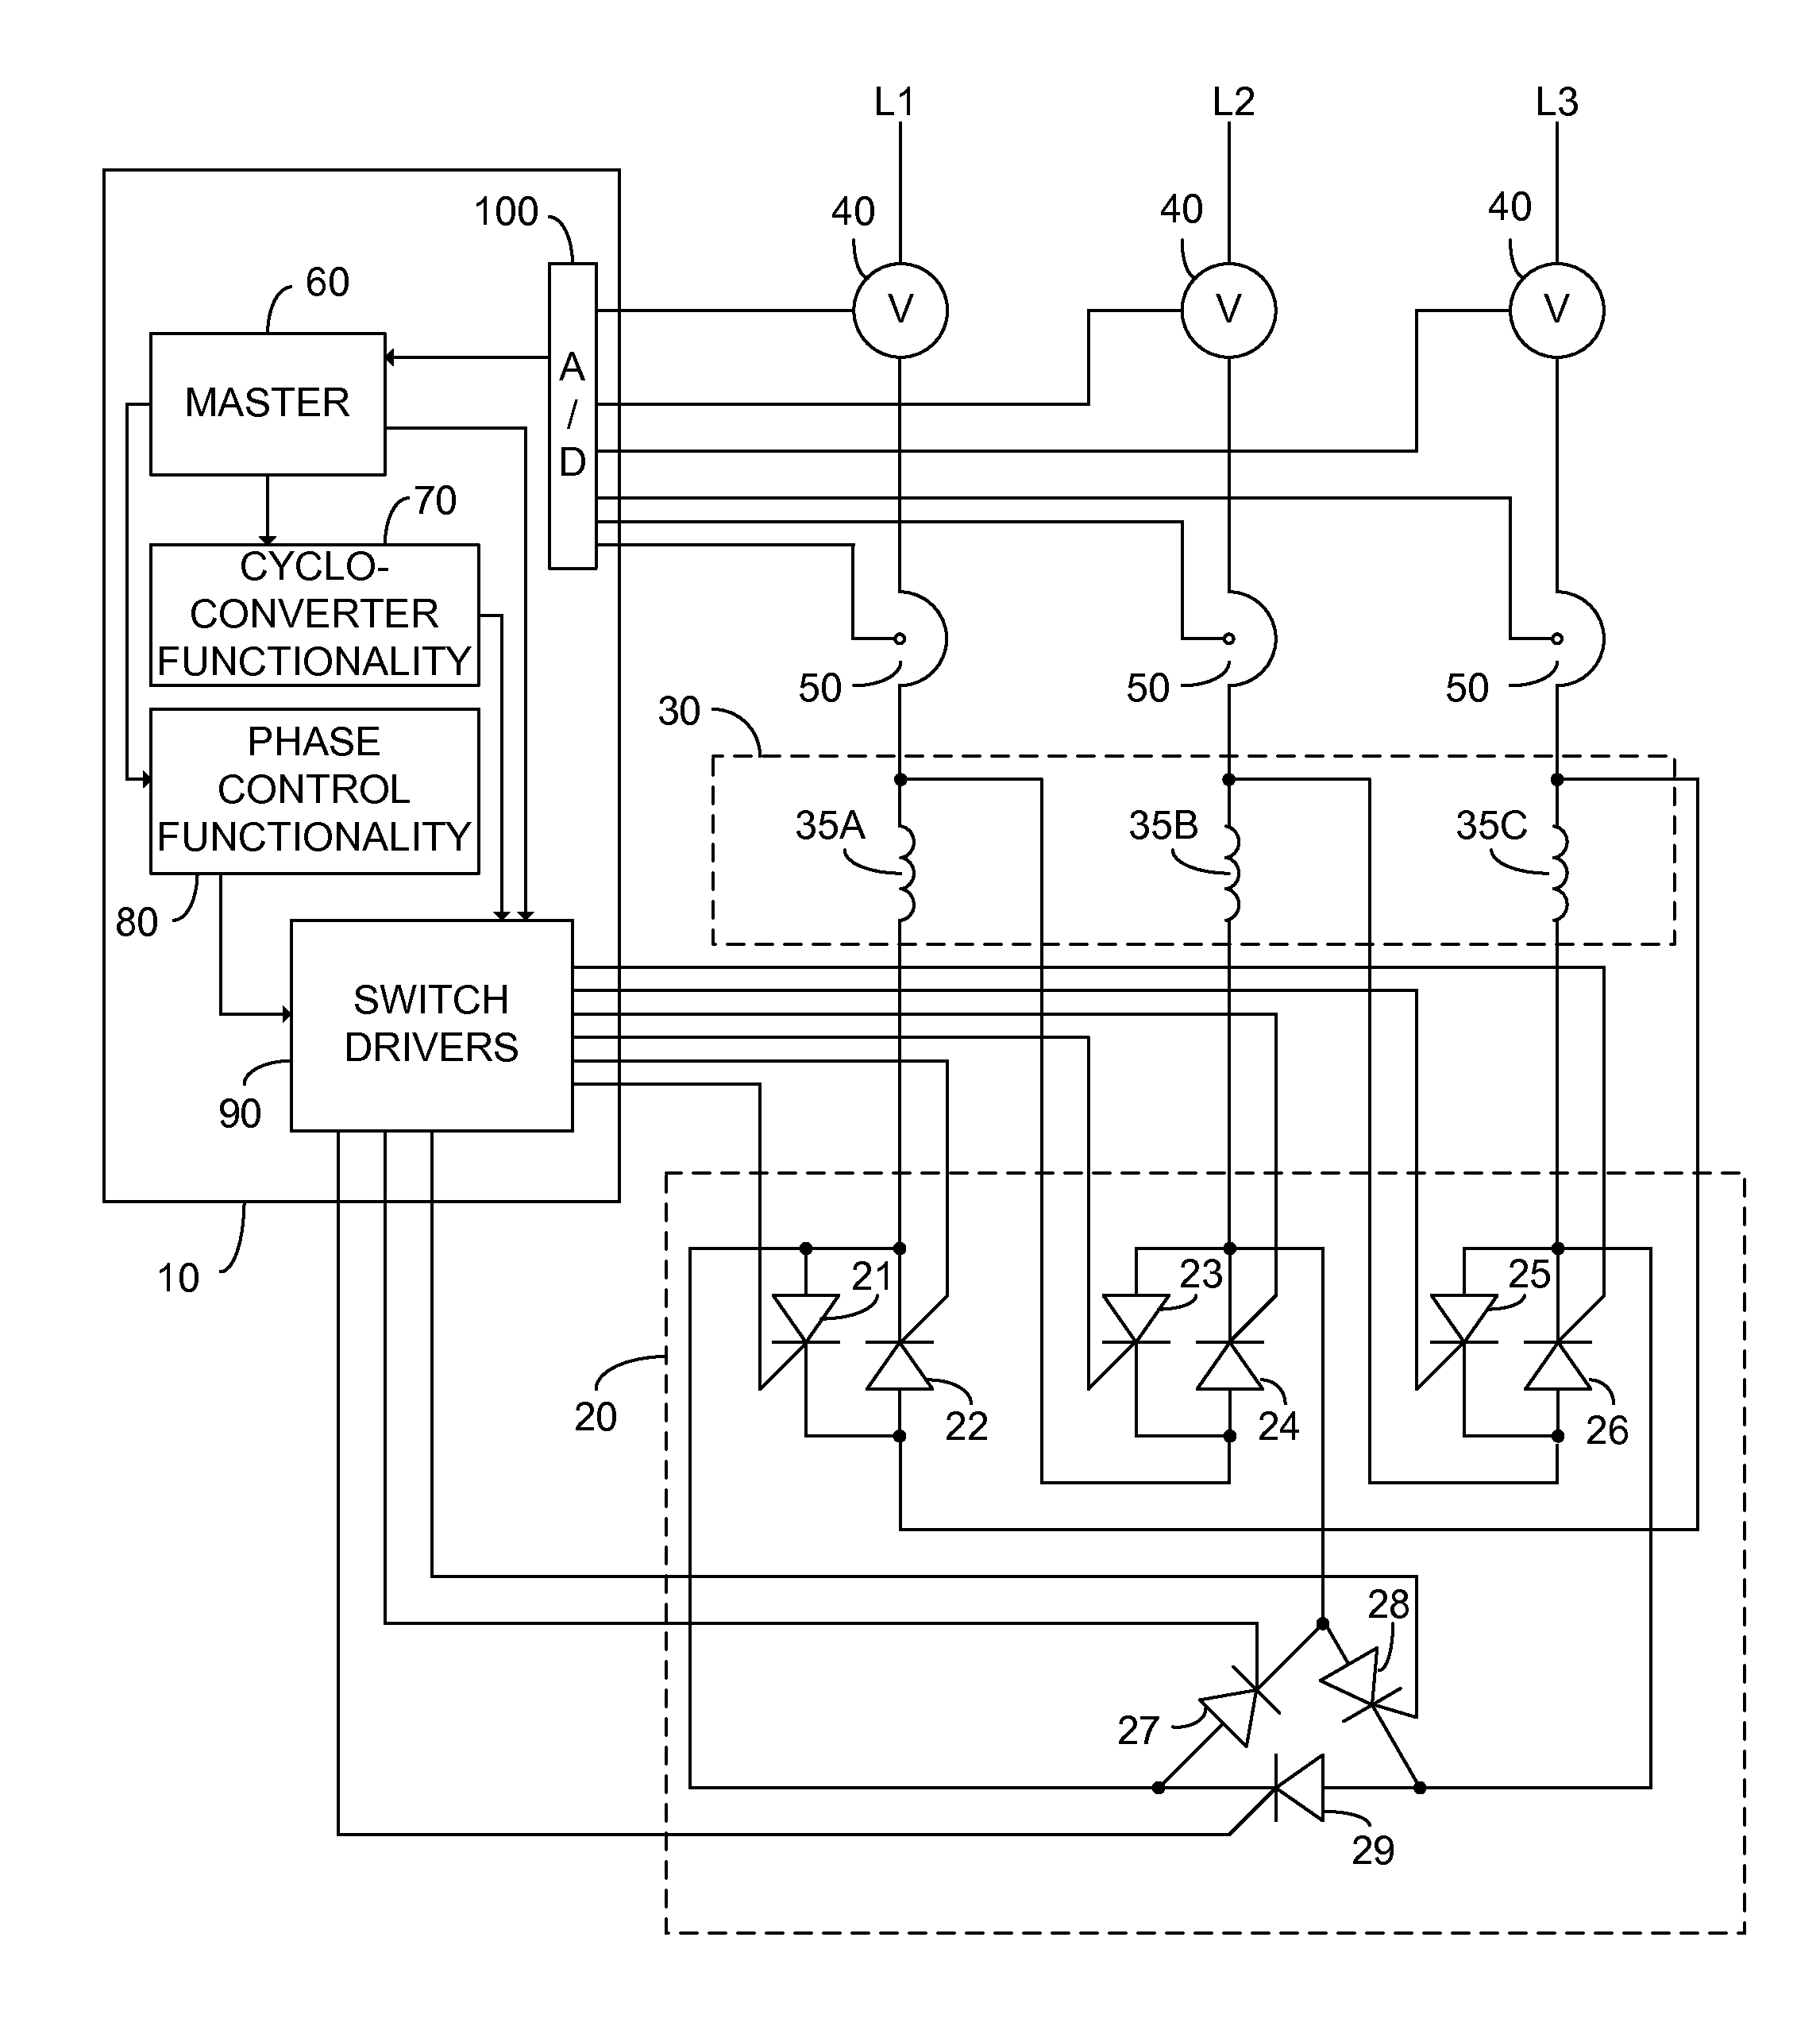 wiring diagram of star delta starter of siemens wiring wiring diagram star delta starter siemens wiring diagram on wiring diagram of star delta starter of